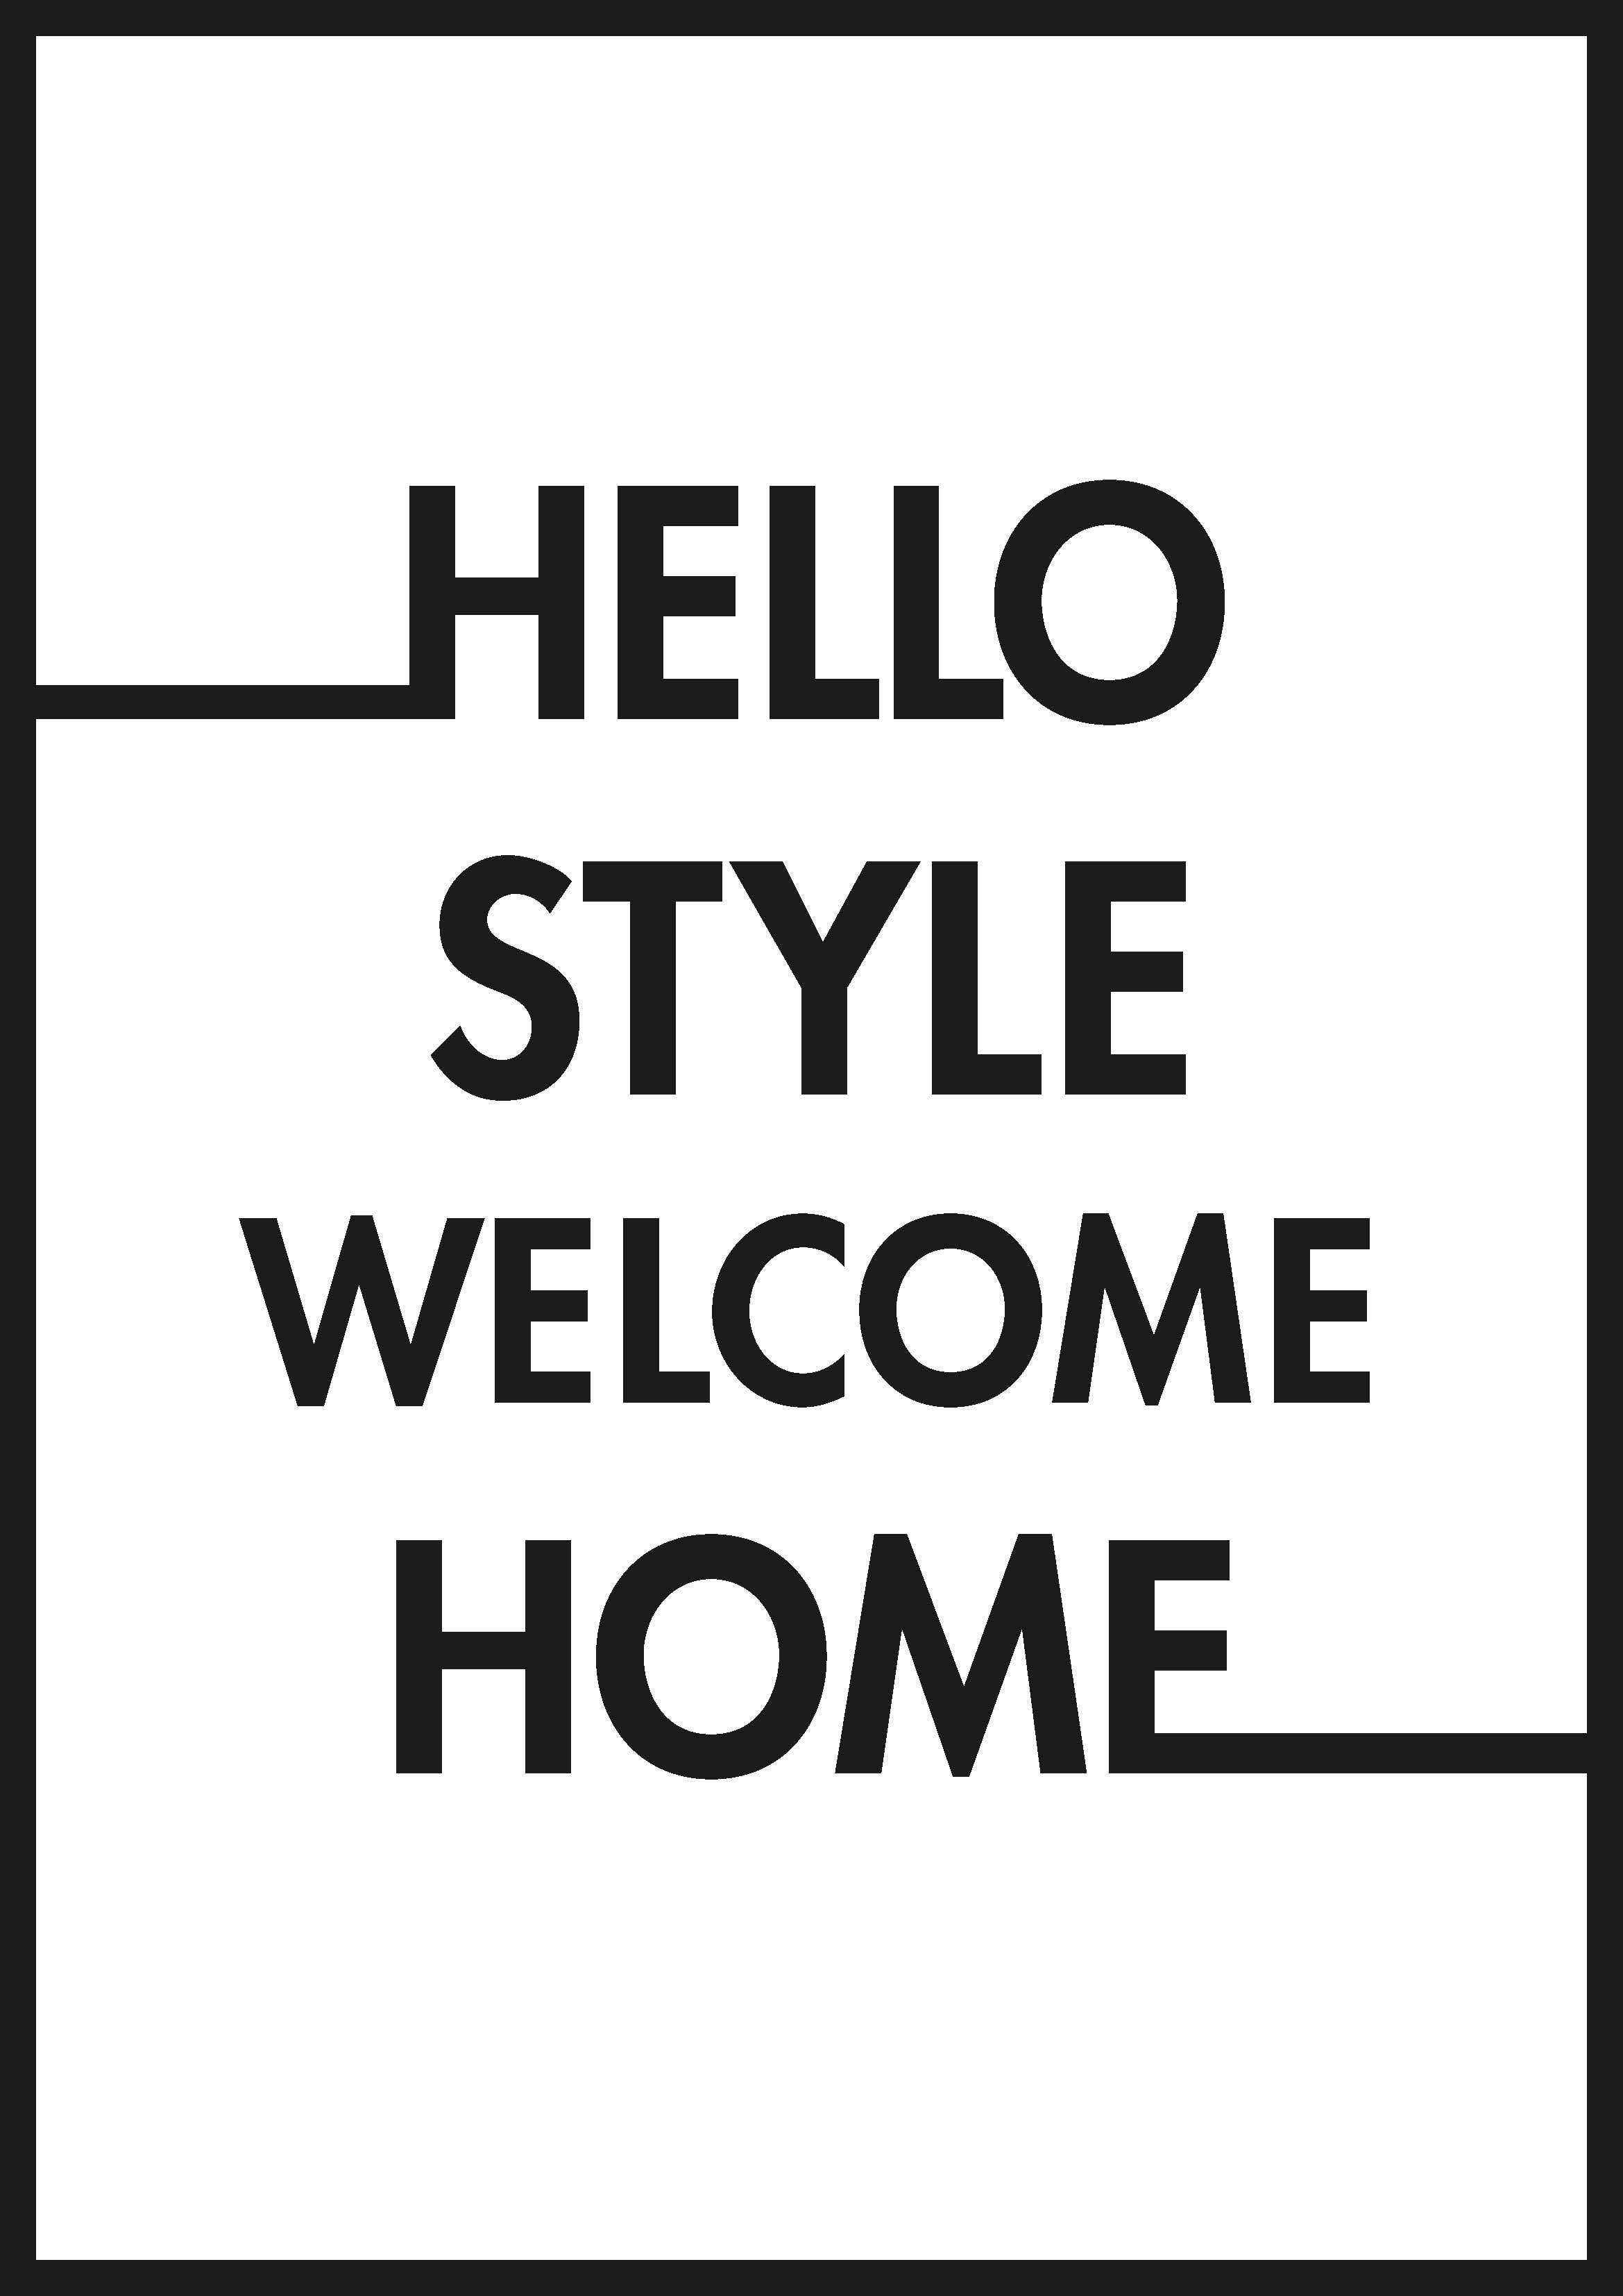 free printable typo poster hello style herunterladen ausdrucken female women 39 s. Black Bedroom Furniture Sets. Home Design Ideas